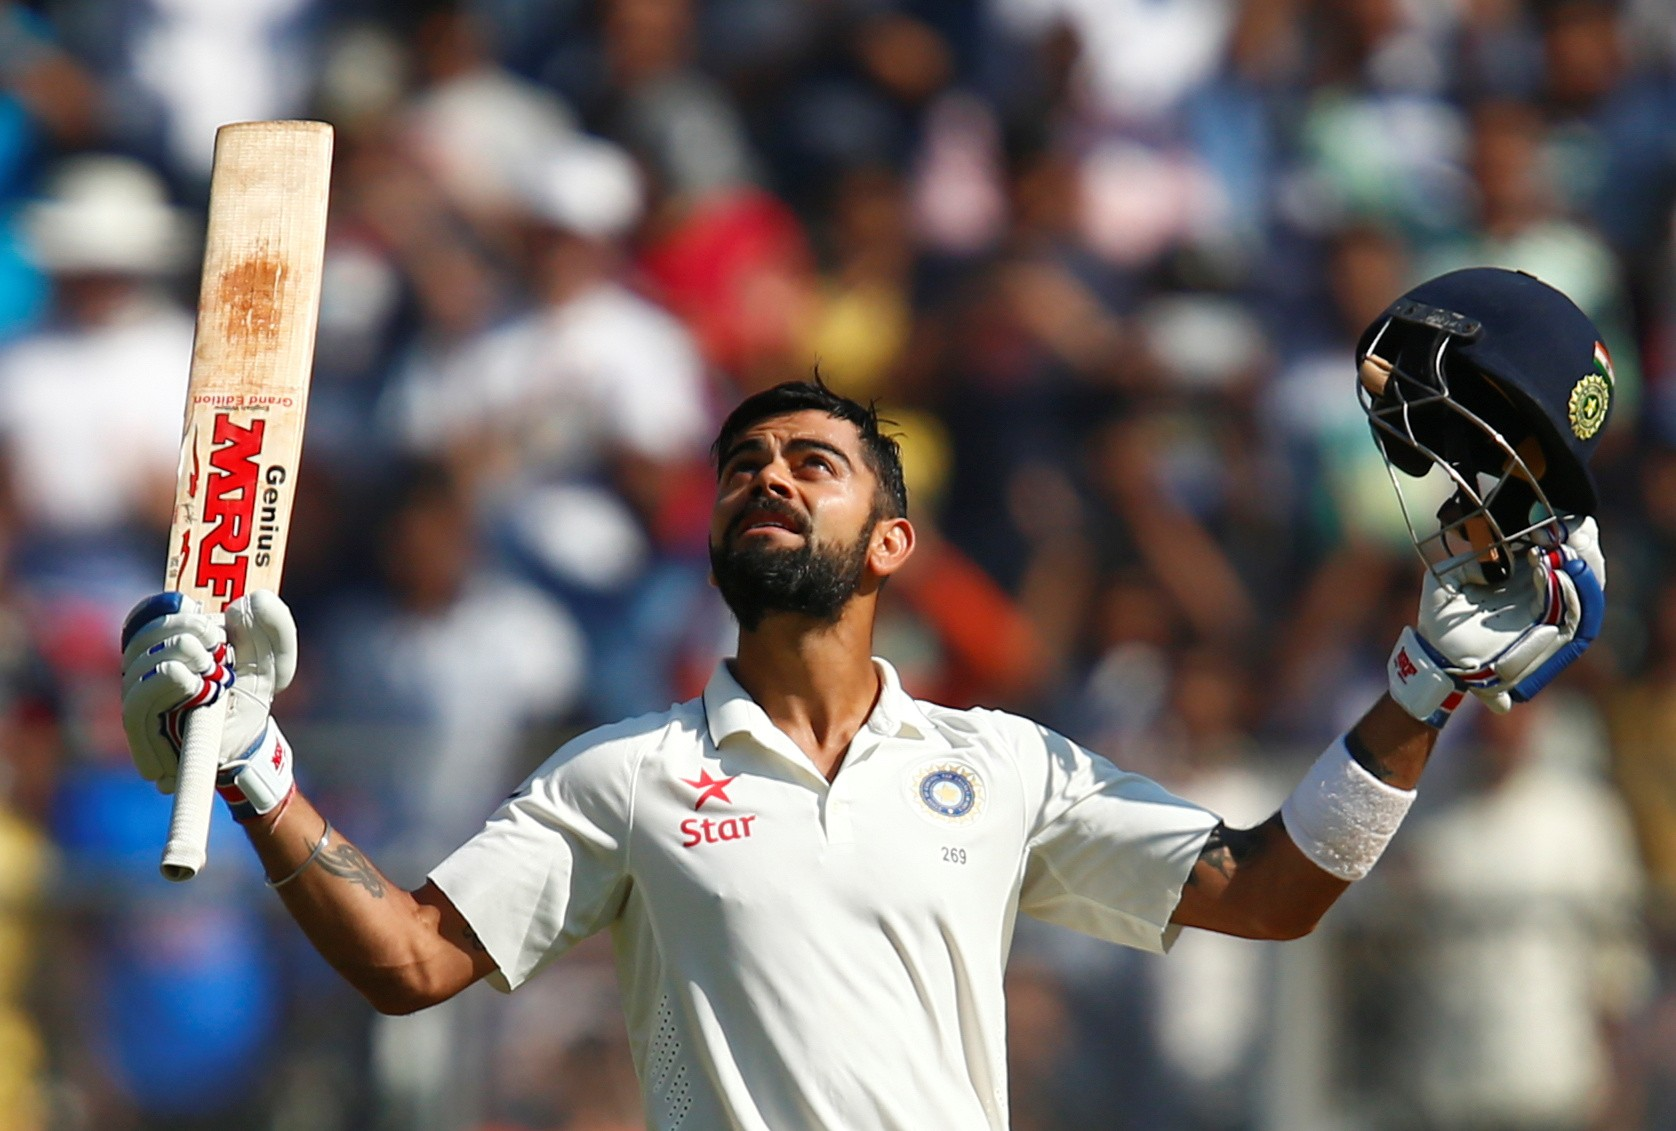 With three double hundreds and astute captaincy, Virat Kohli was India's biggest positive of 2016 (Image credit: AFP)